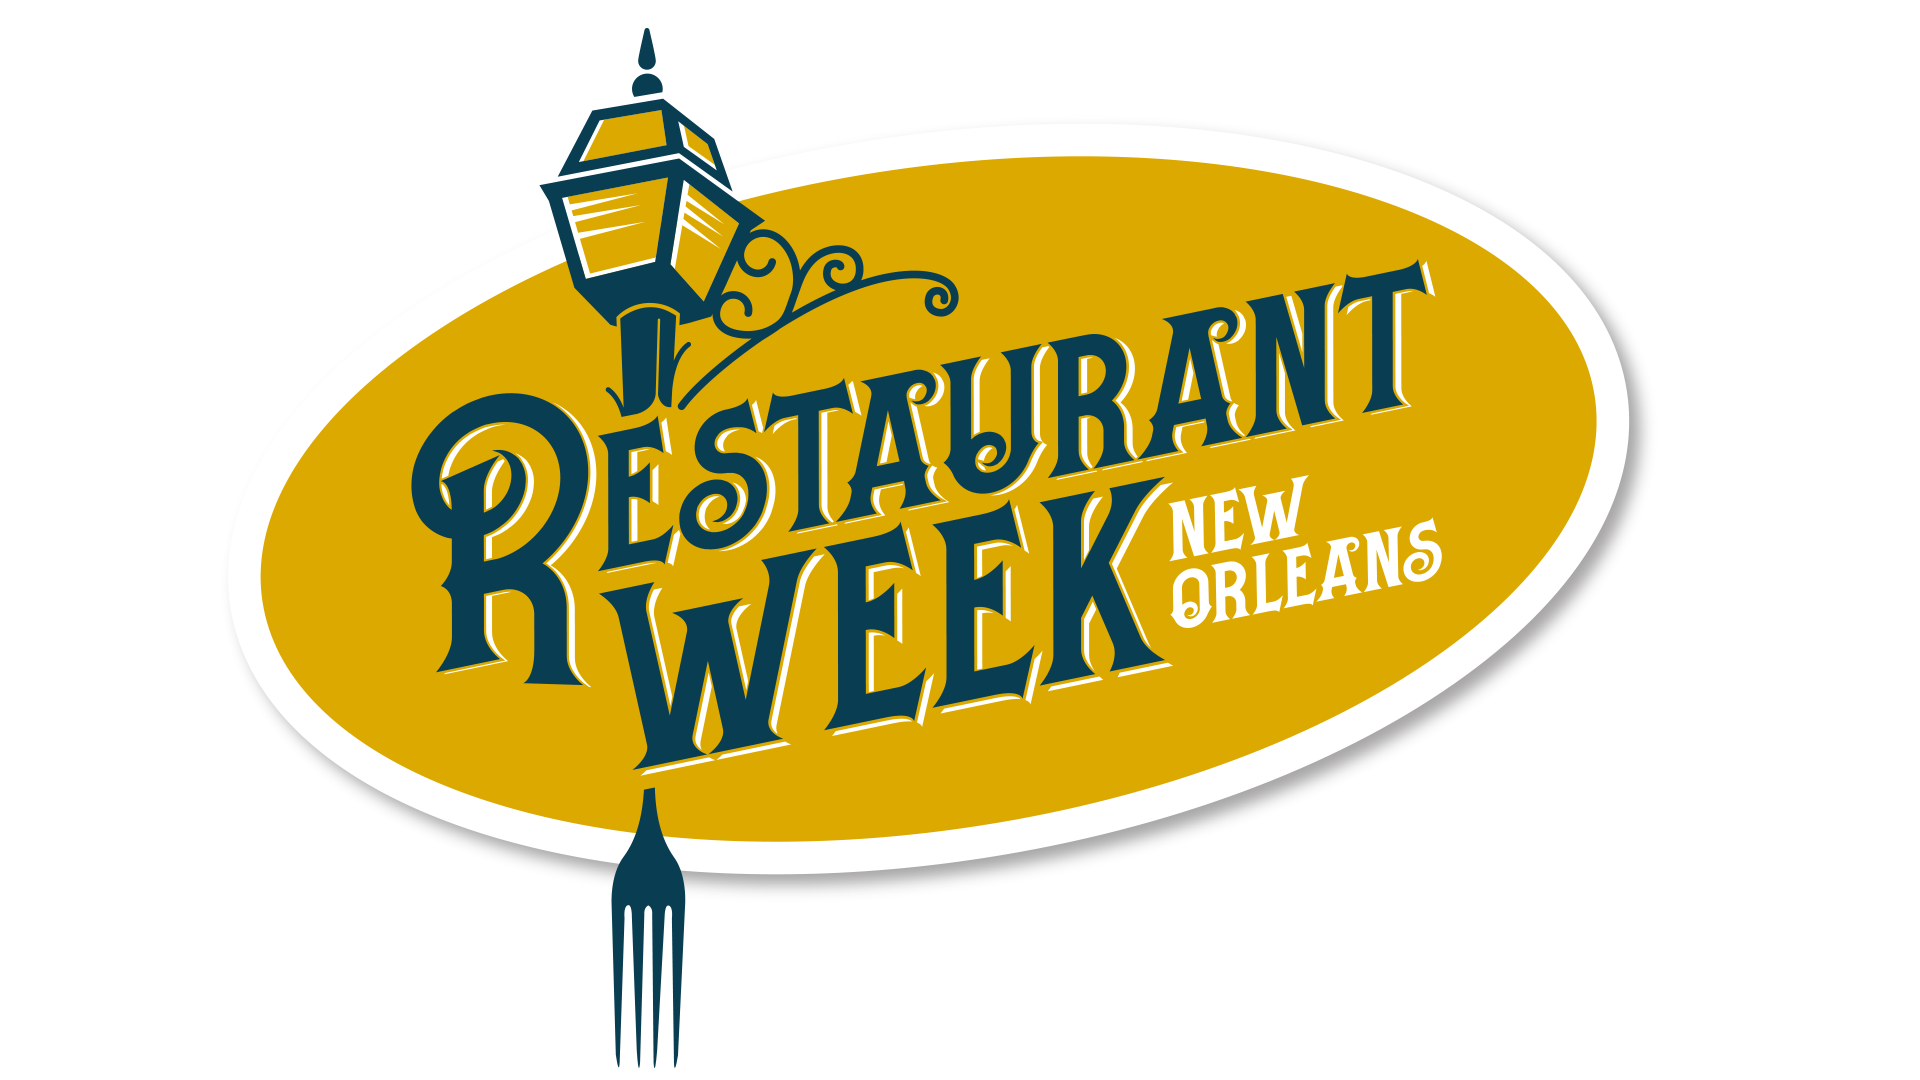 Coolinary New Orleans Restaurant Month